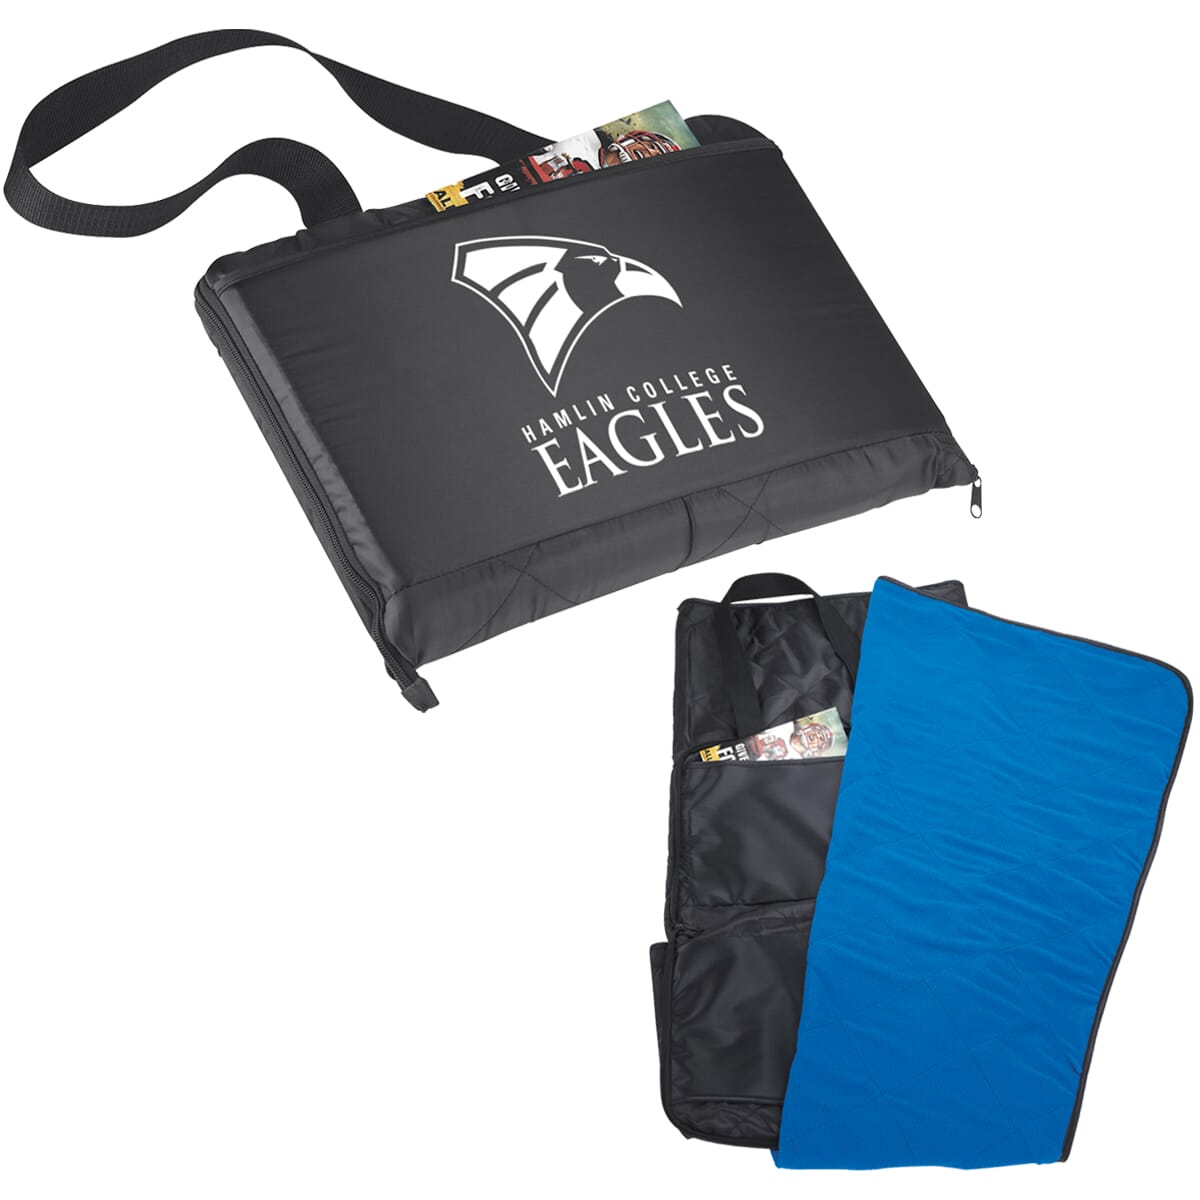 Black and blue blanket bag with school logo